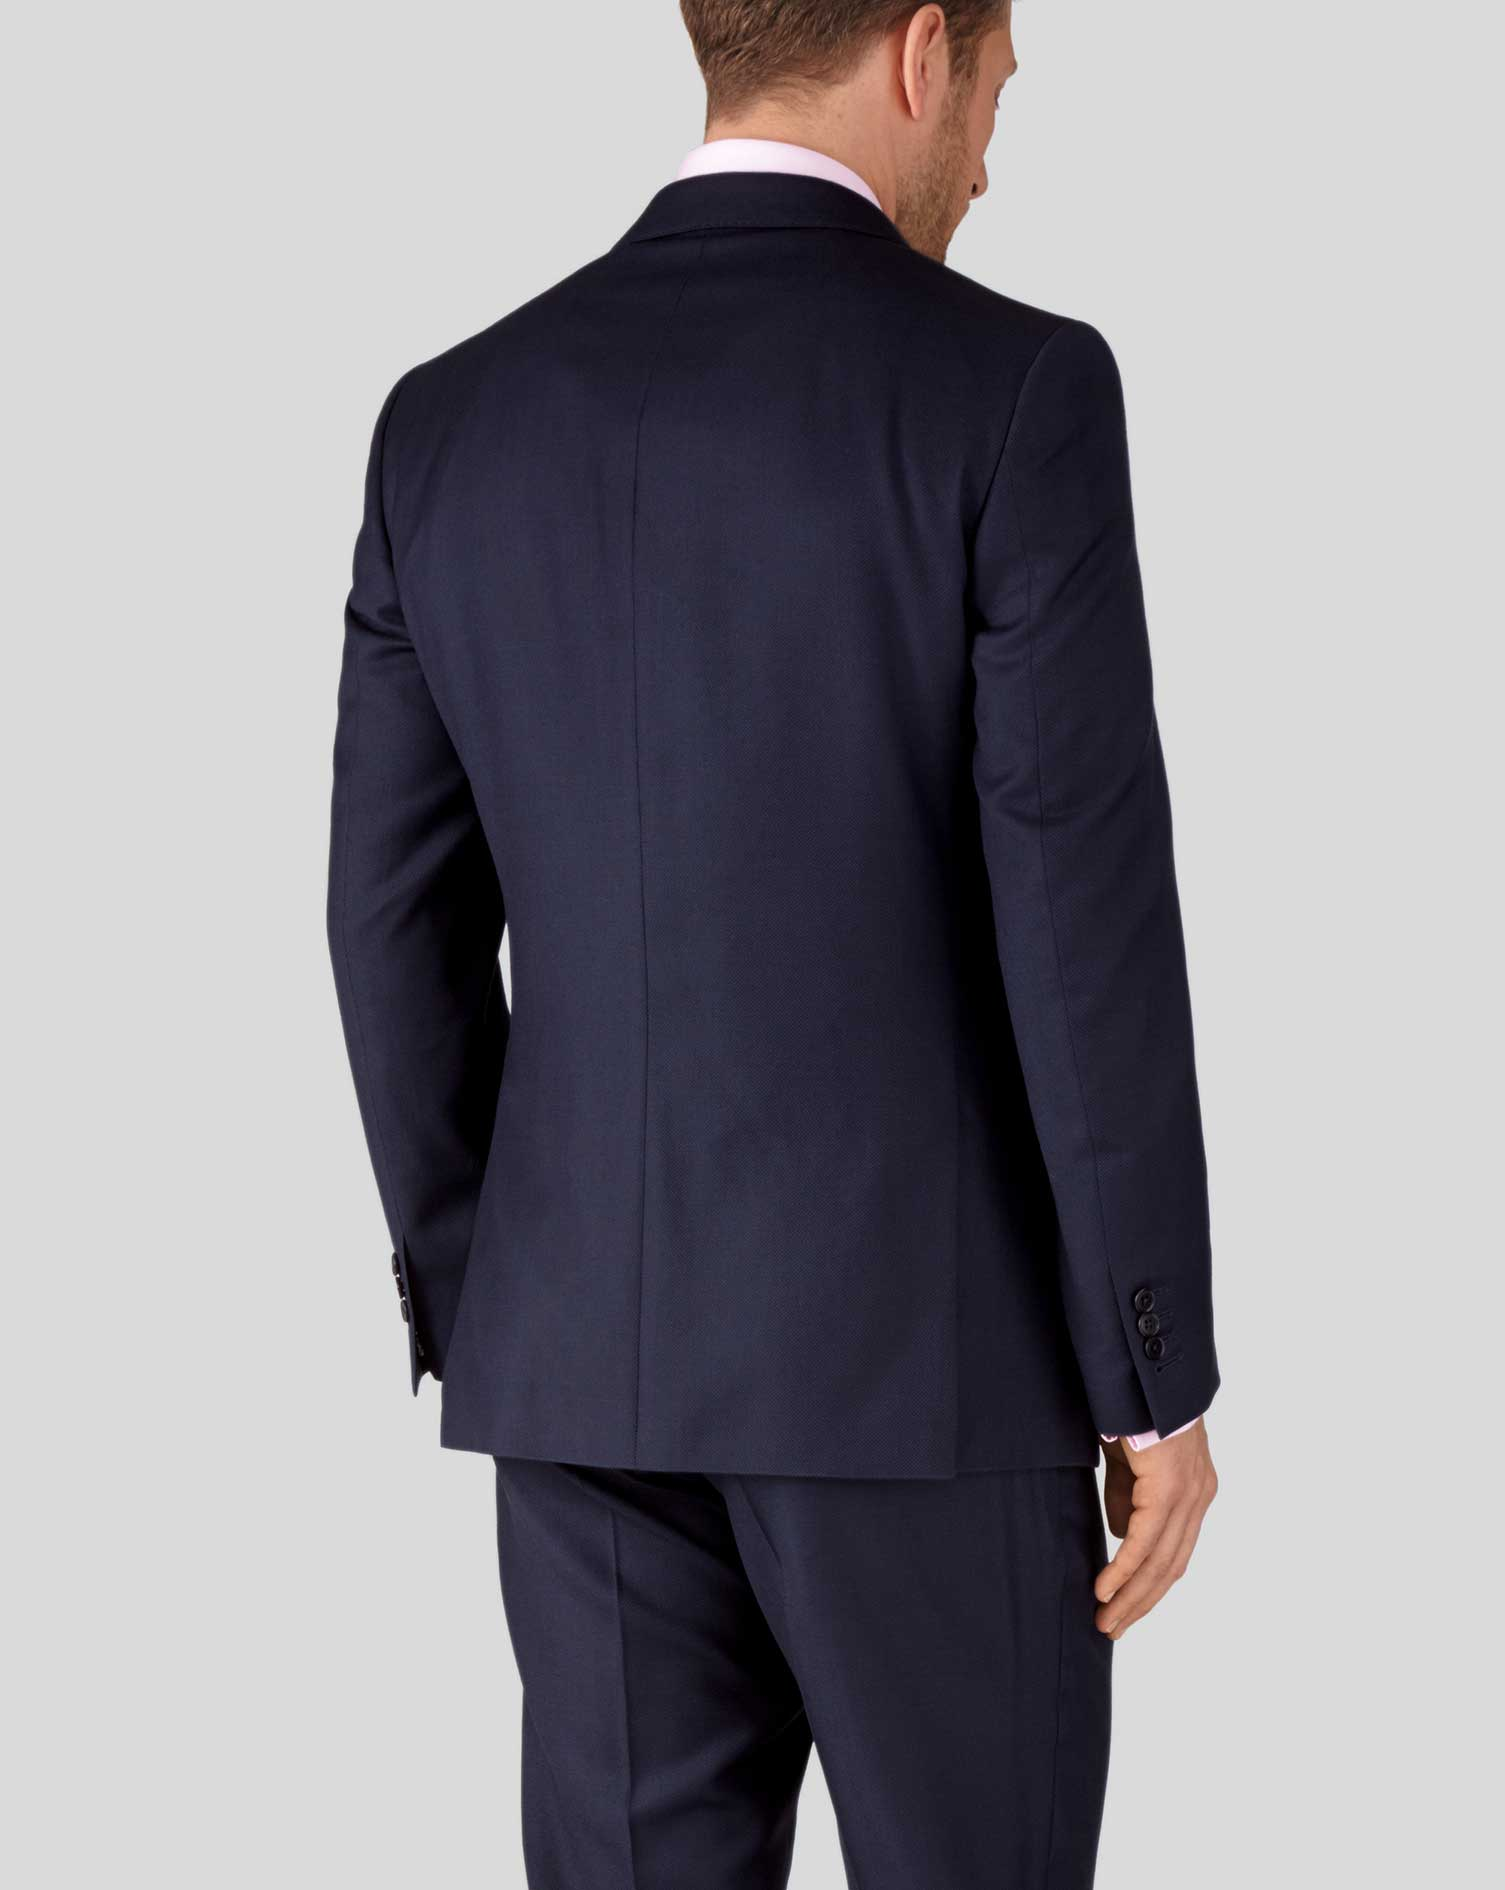 Ink blue slim fit birdseye travel suit jacket